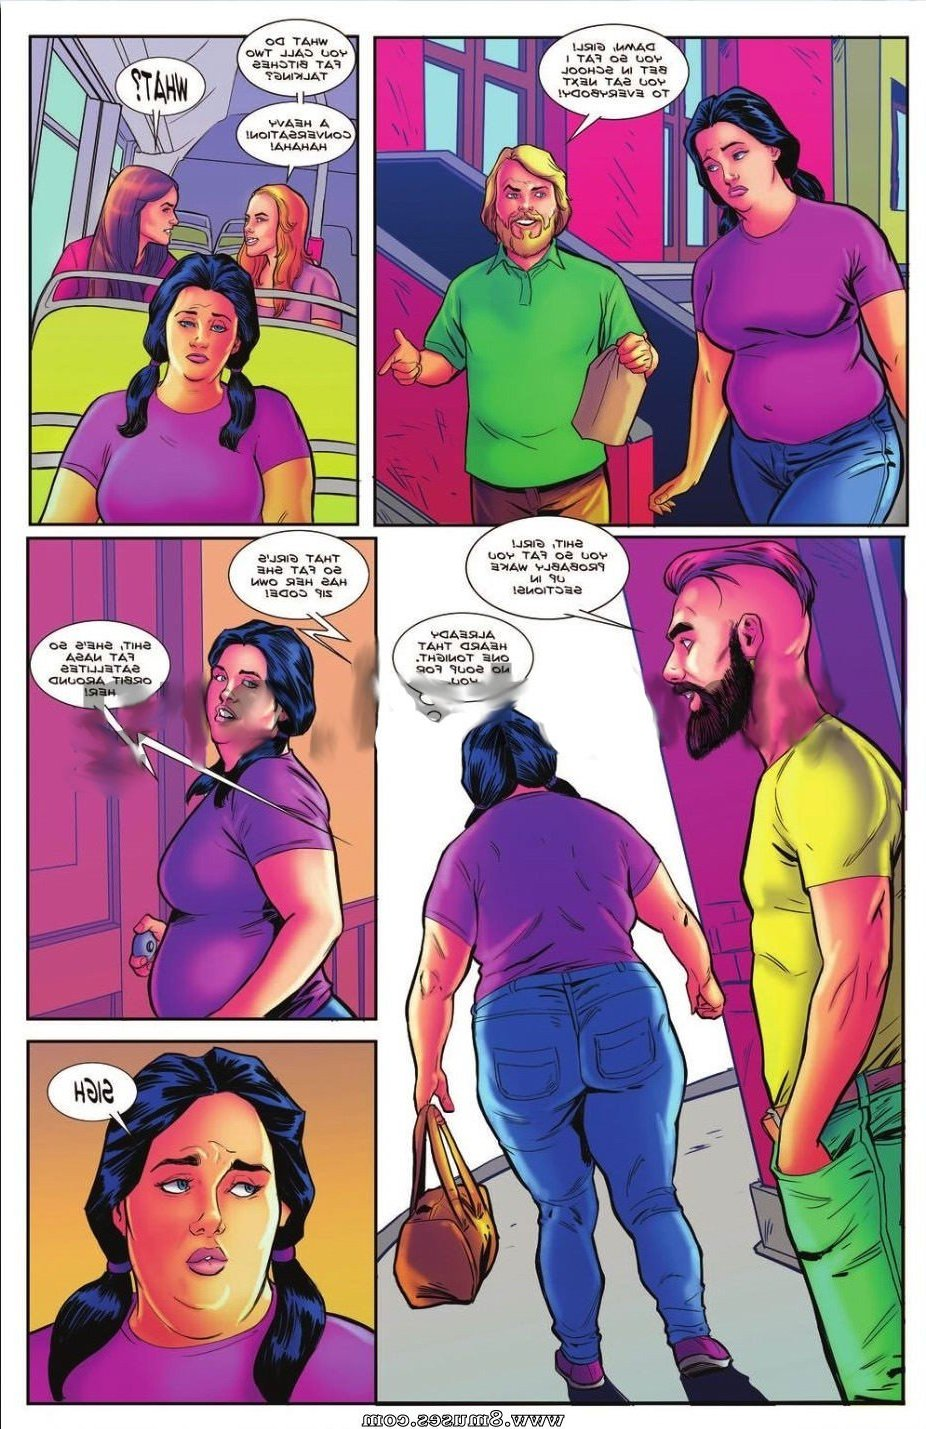 Giantess-Club-Comics/Big-Girls-Dont-Cry/Issue-1 Big_Girls_Dont_Cry_-_Issue_1_8.jpg